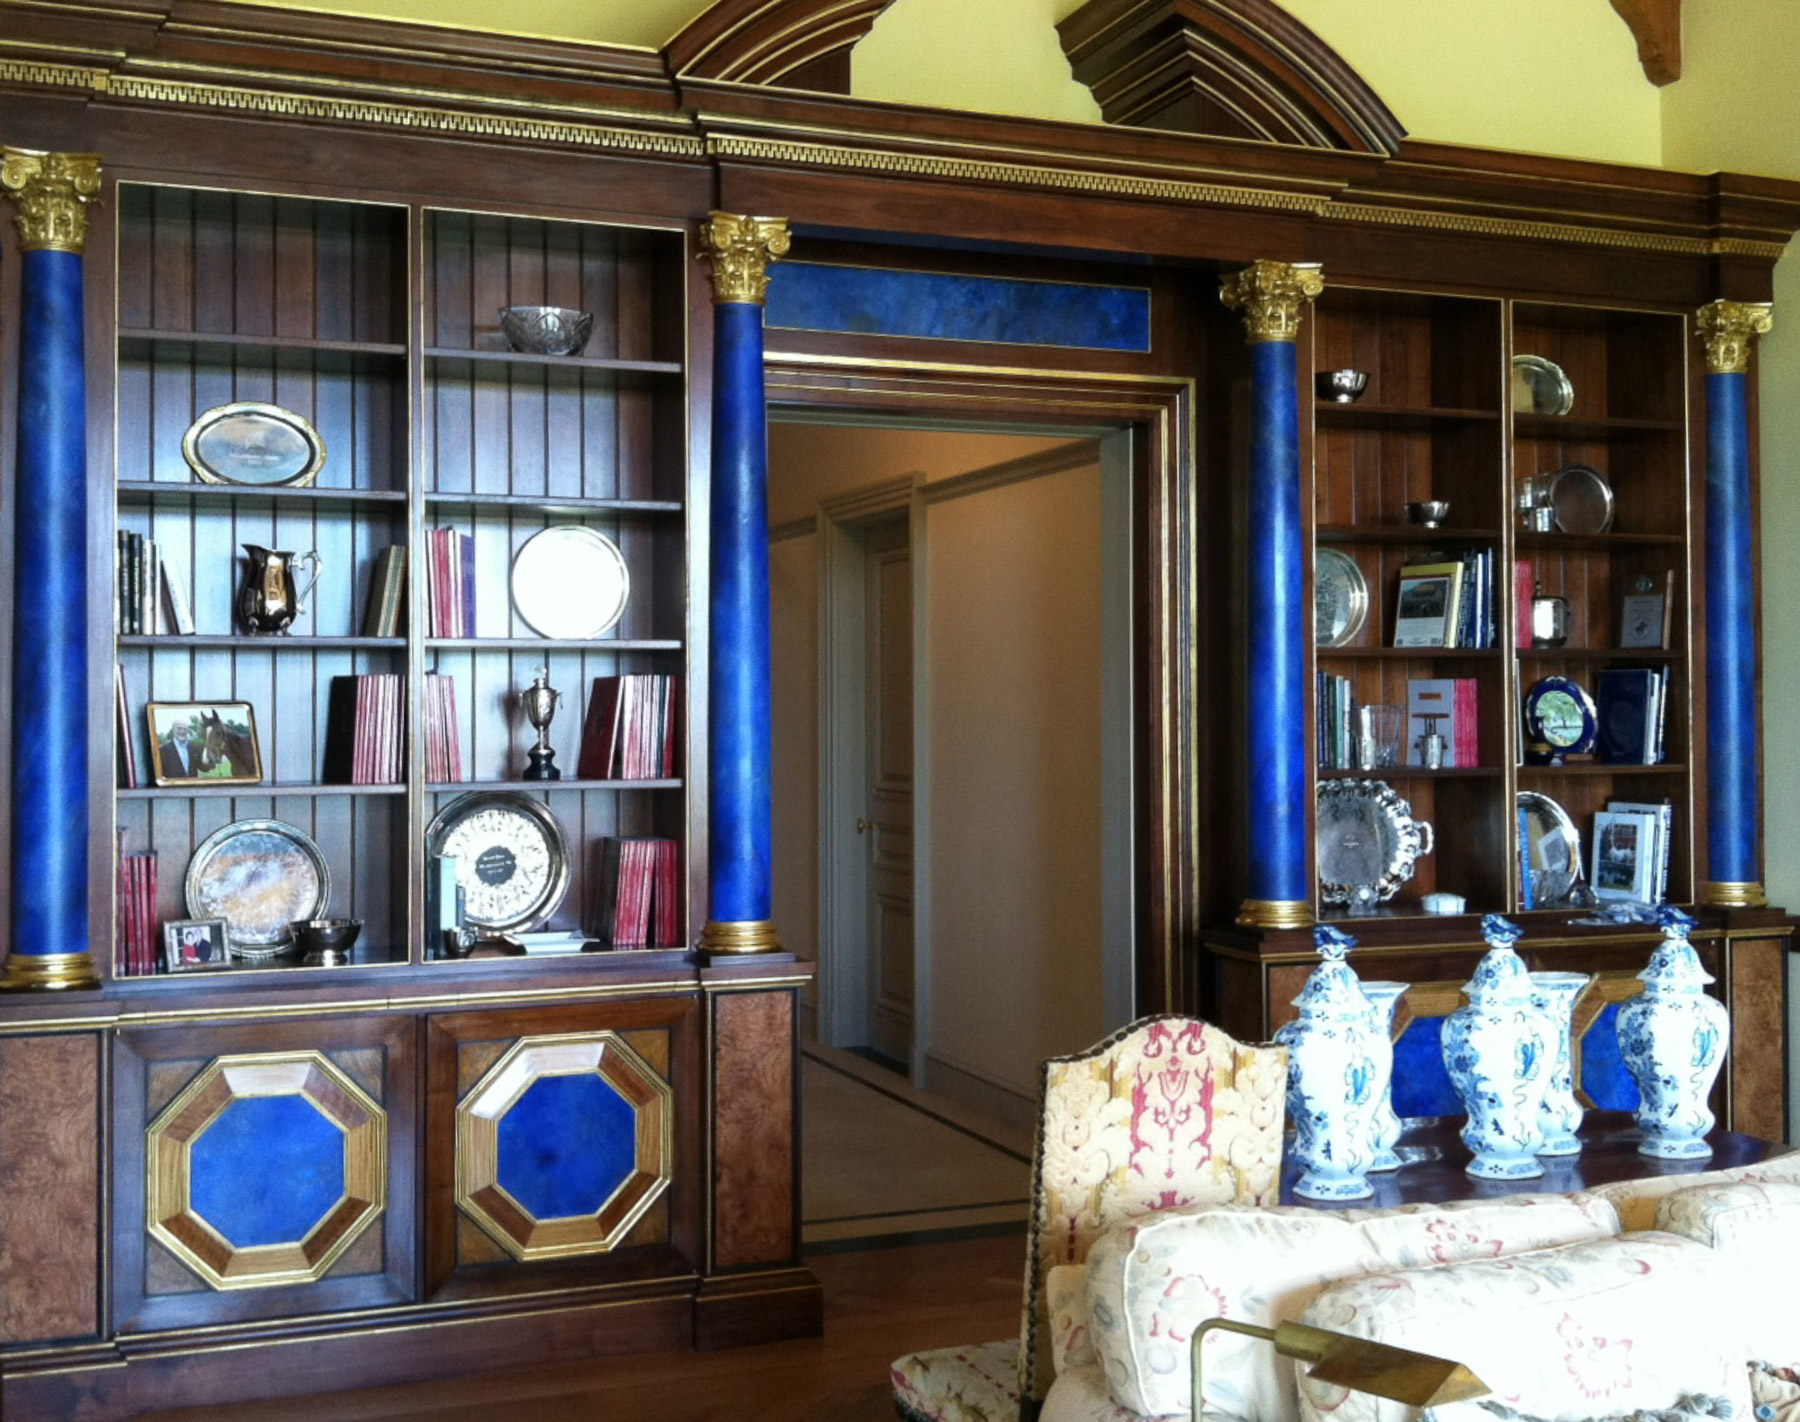 Image of room with faux lapis details painted on custom cabinetry